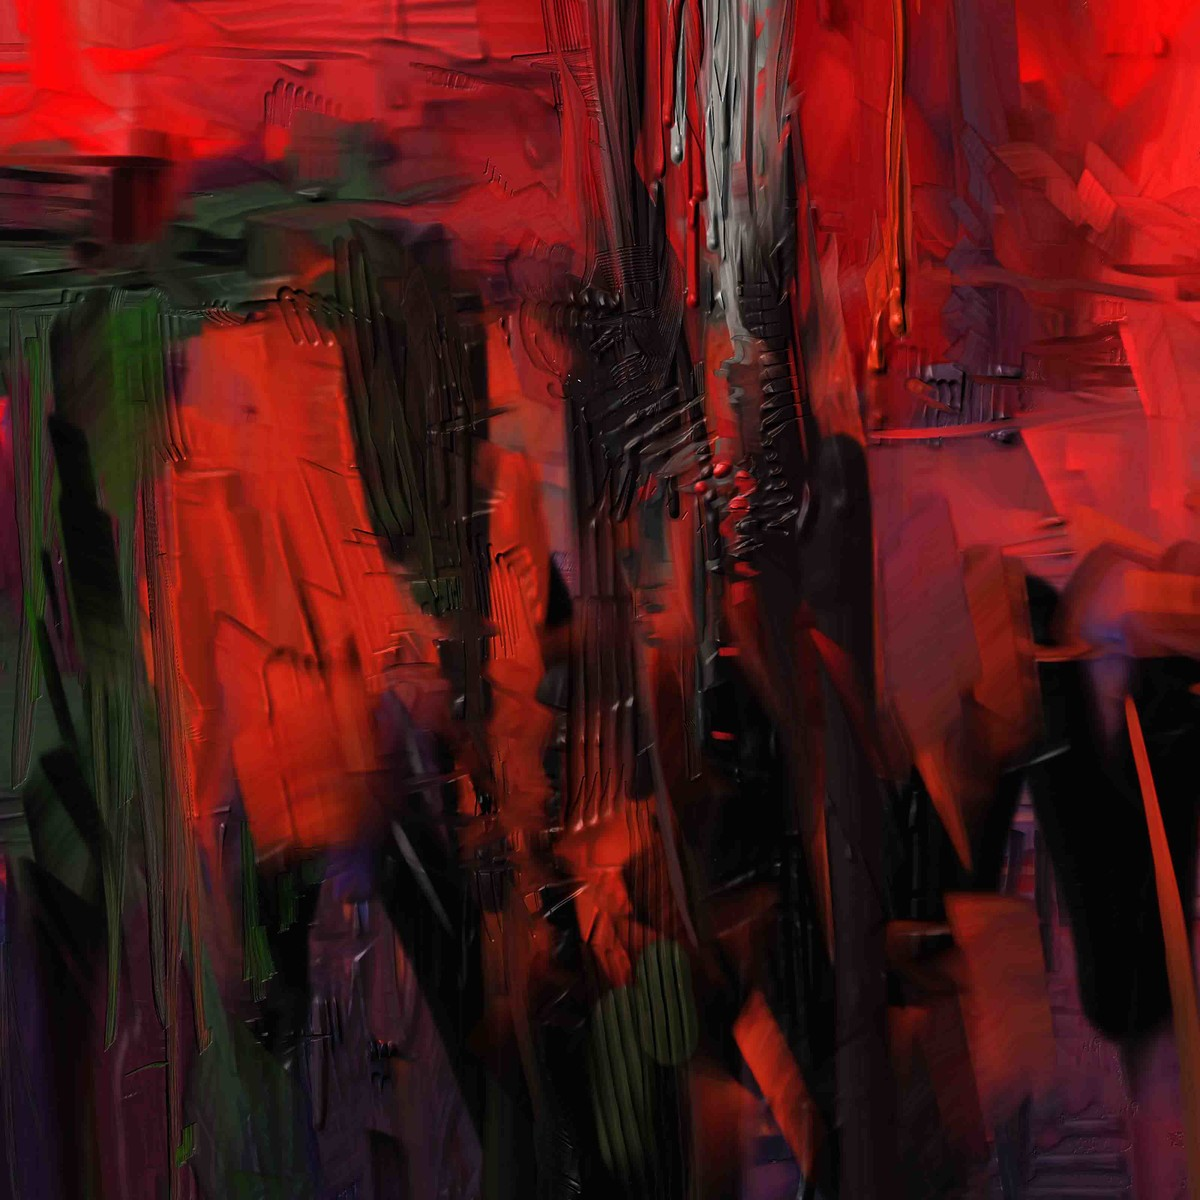 Black Red Digital Print by The Print Studio,Abstract